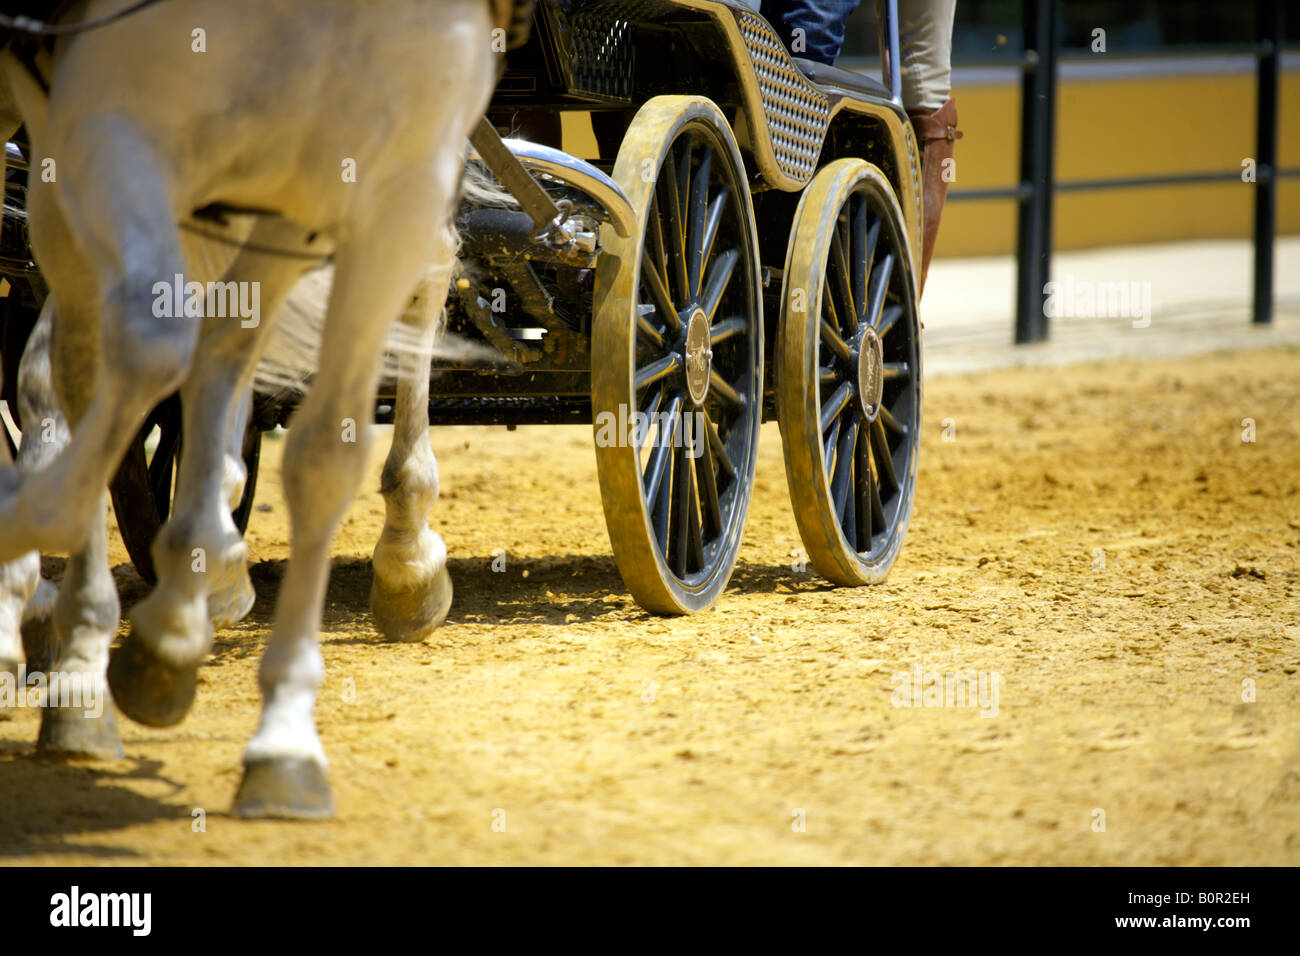 Wheels and hooves of a horse drawn chariot, Jerez de la Frontera, Andalucia, Spain - Stock Image